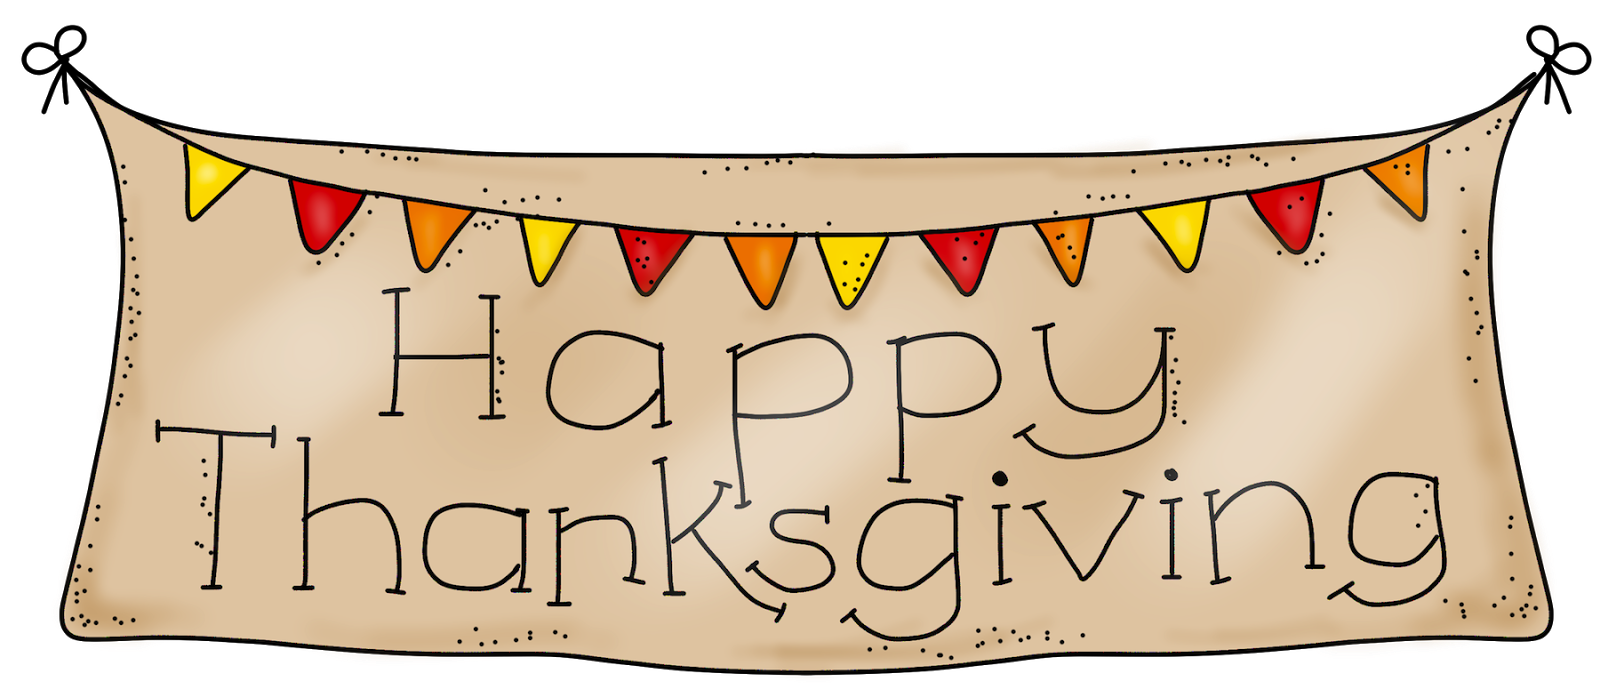 Wonder clipart thanksgiving graphic royalty free Happy Thanksgiving Day 2019: Turkey Images, Pictures, Quotes ... graphic royalty free